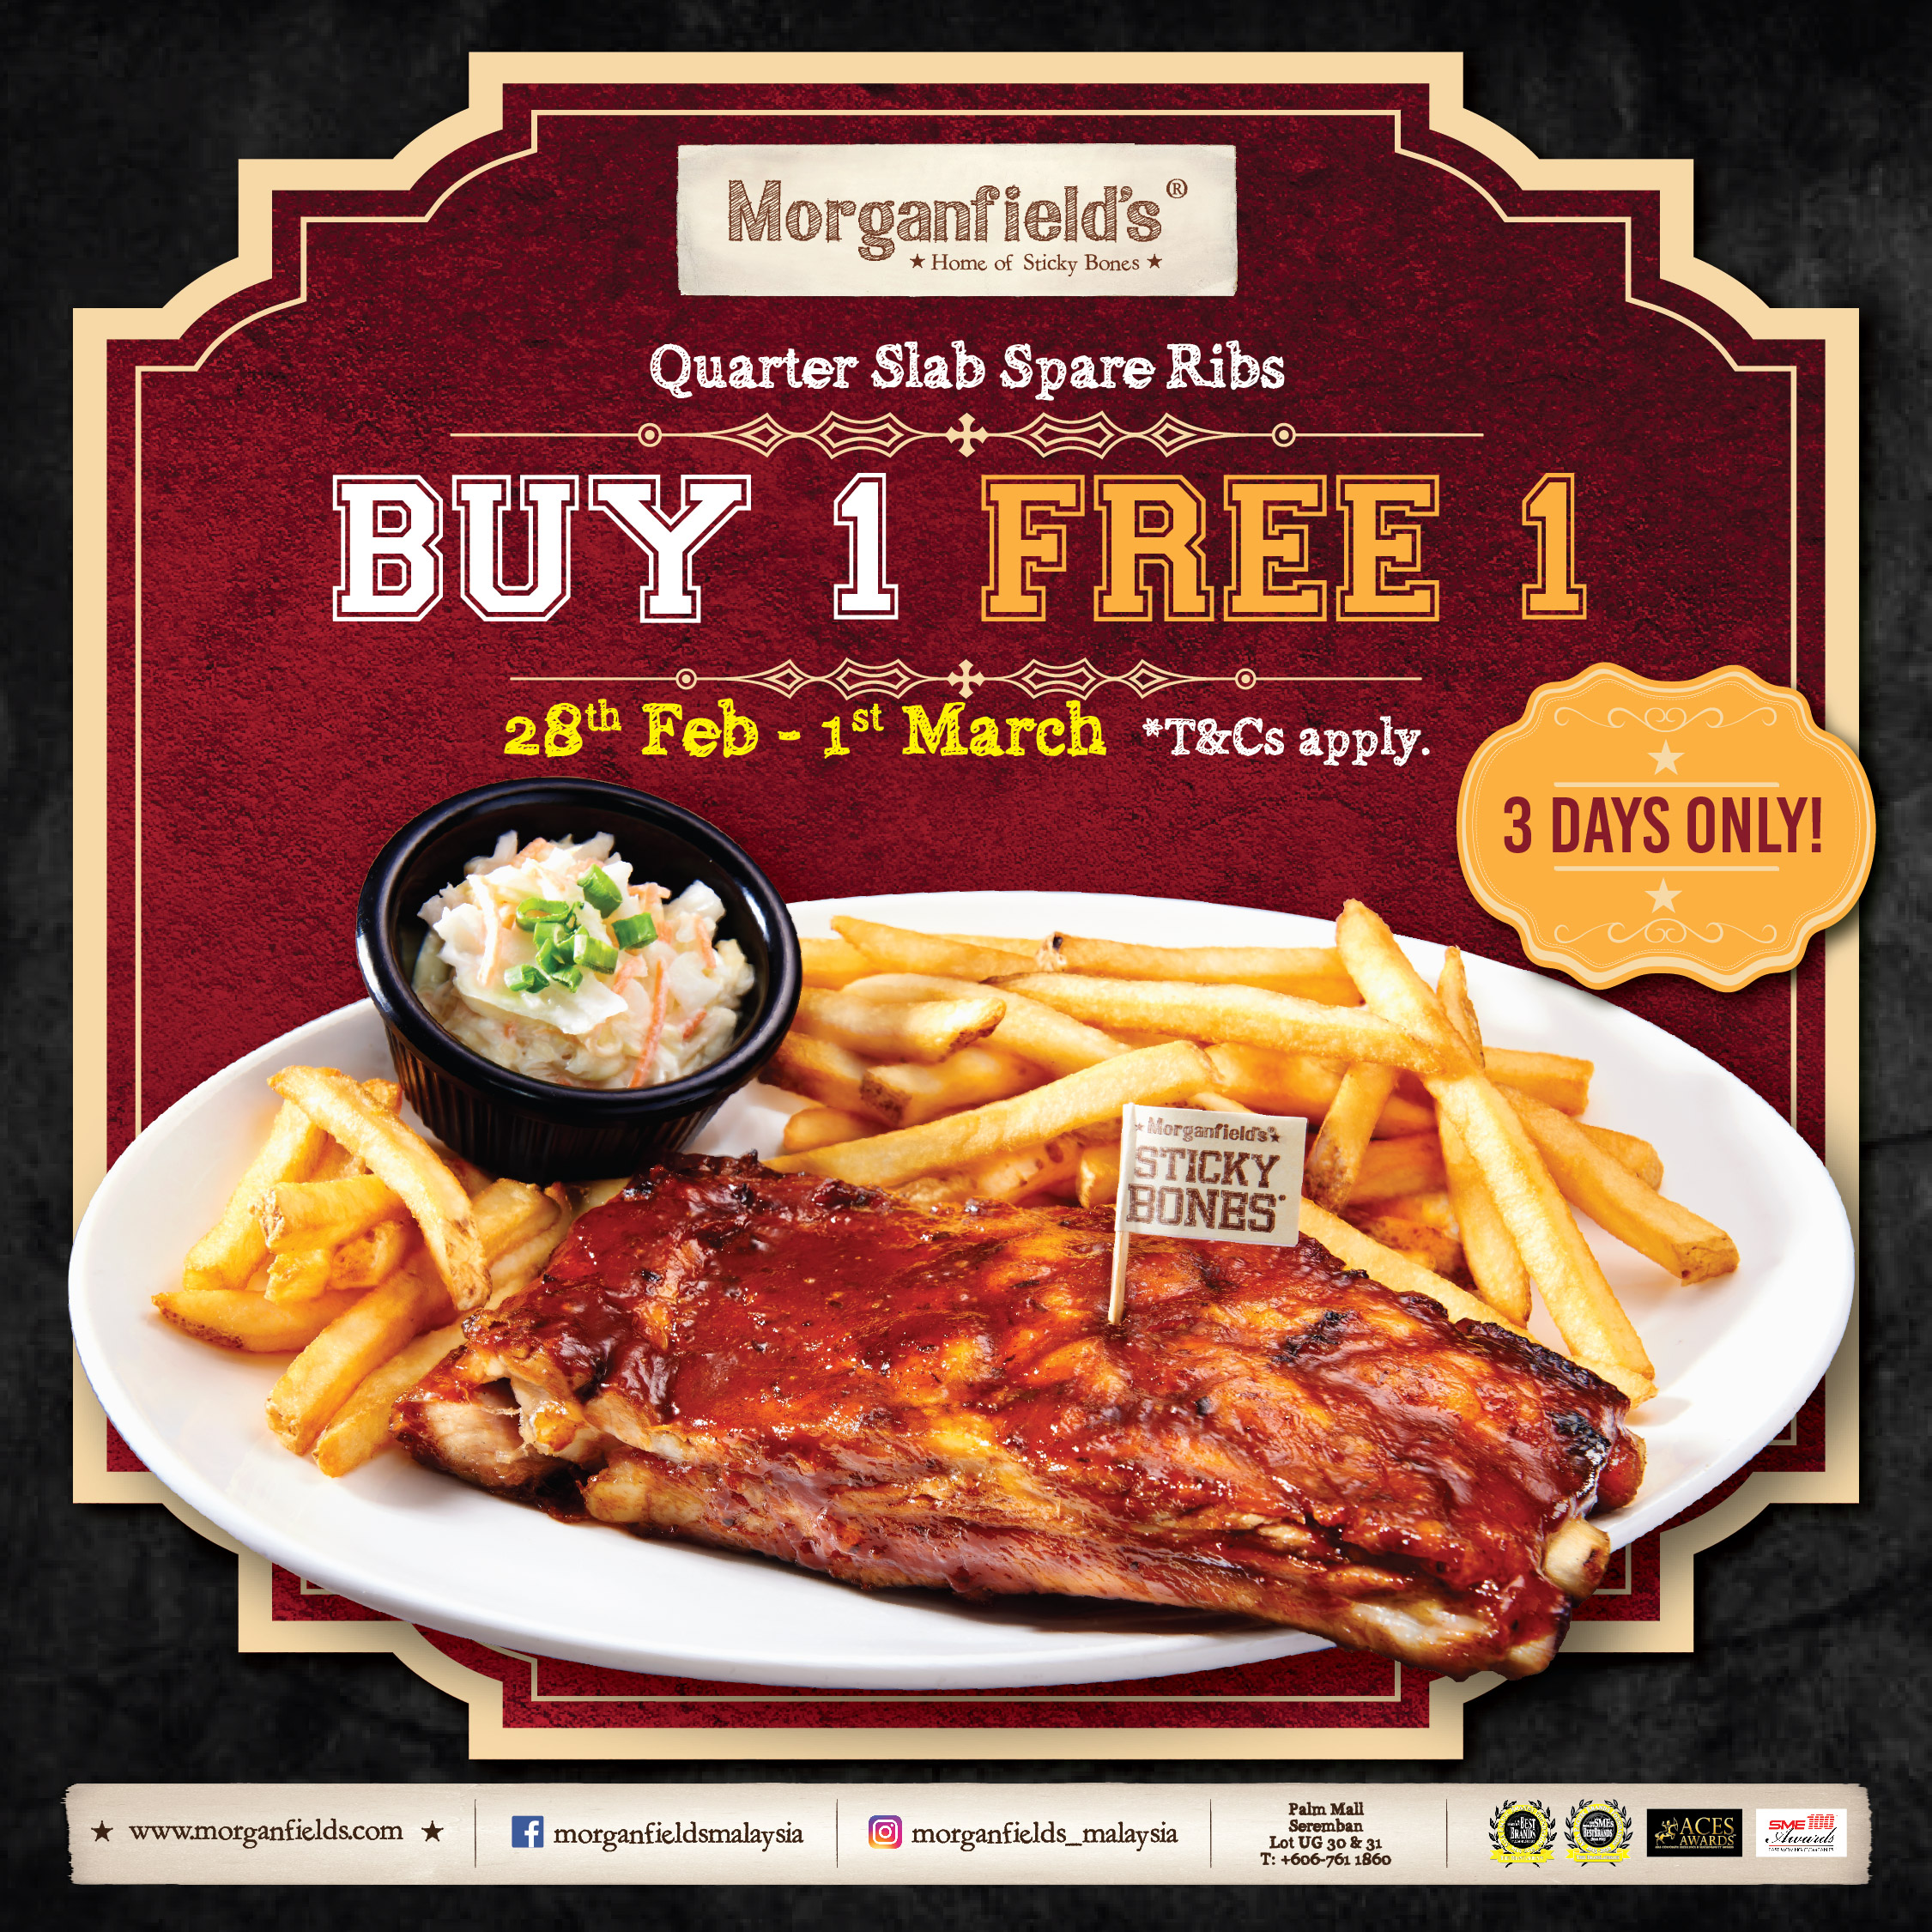 Morganfield's Buy 1 Free 1!